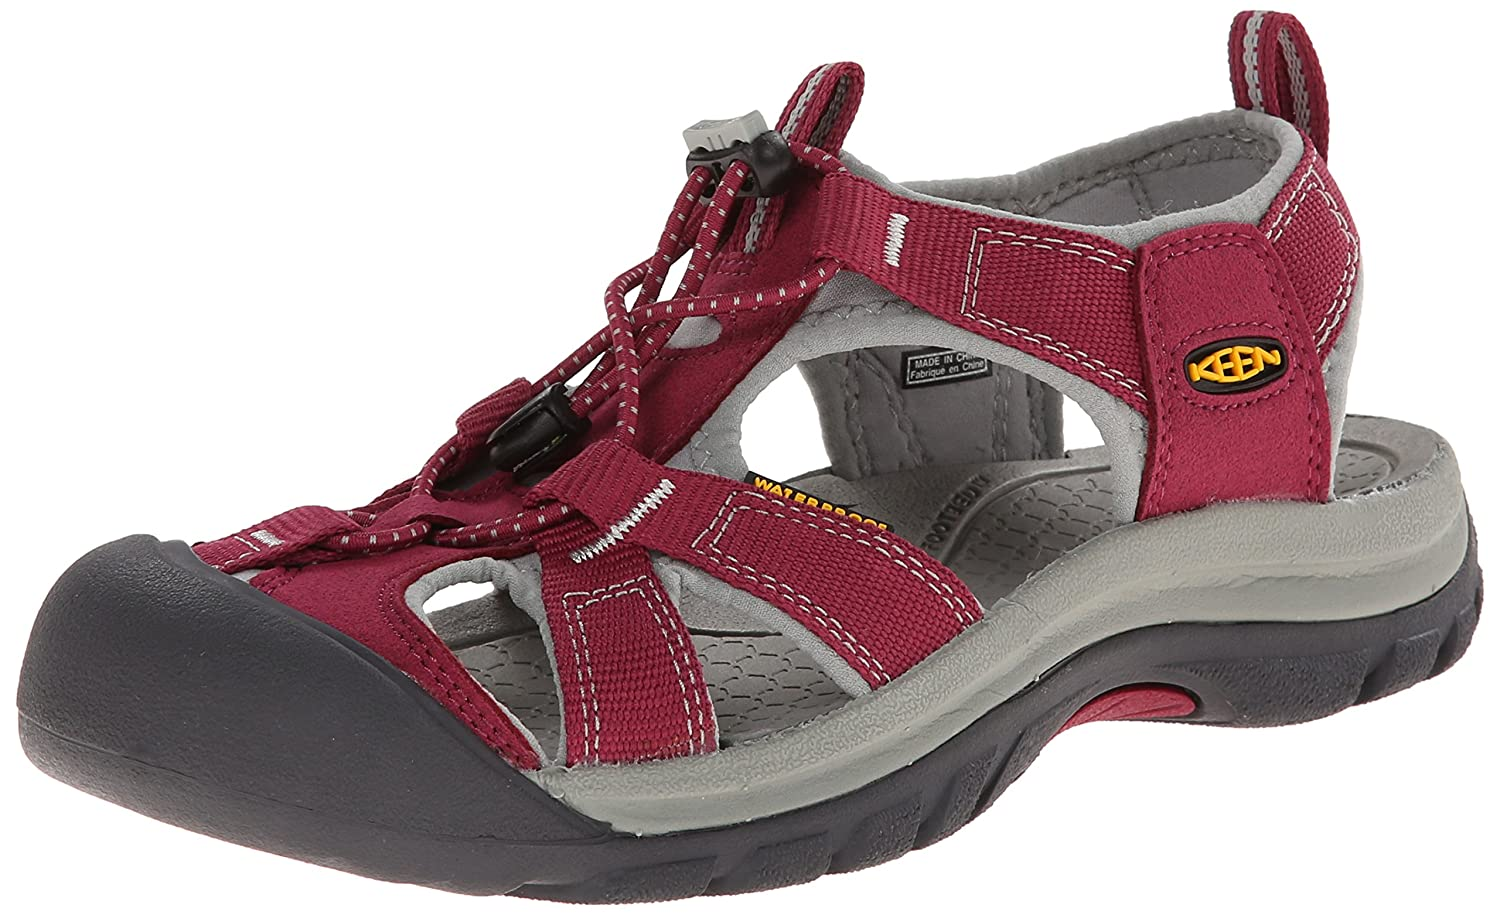 KEEN Women's Venice H2 Sandal B00LG81KJ0 11 B(M) US|Beet Red/Neutral Gray